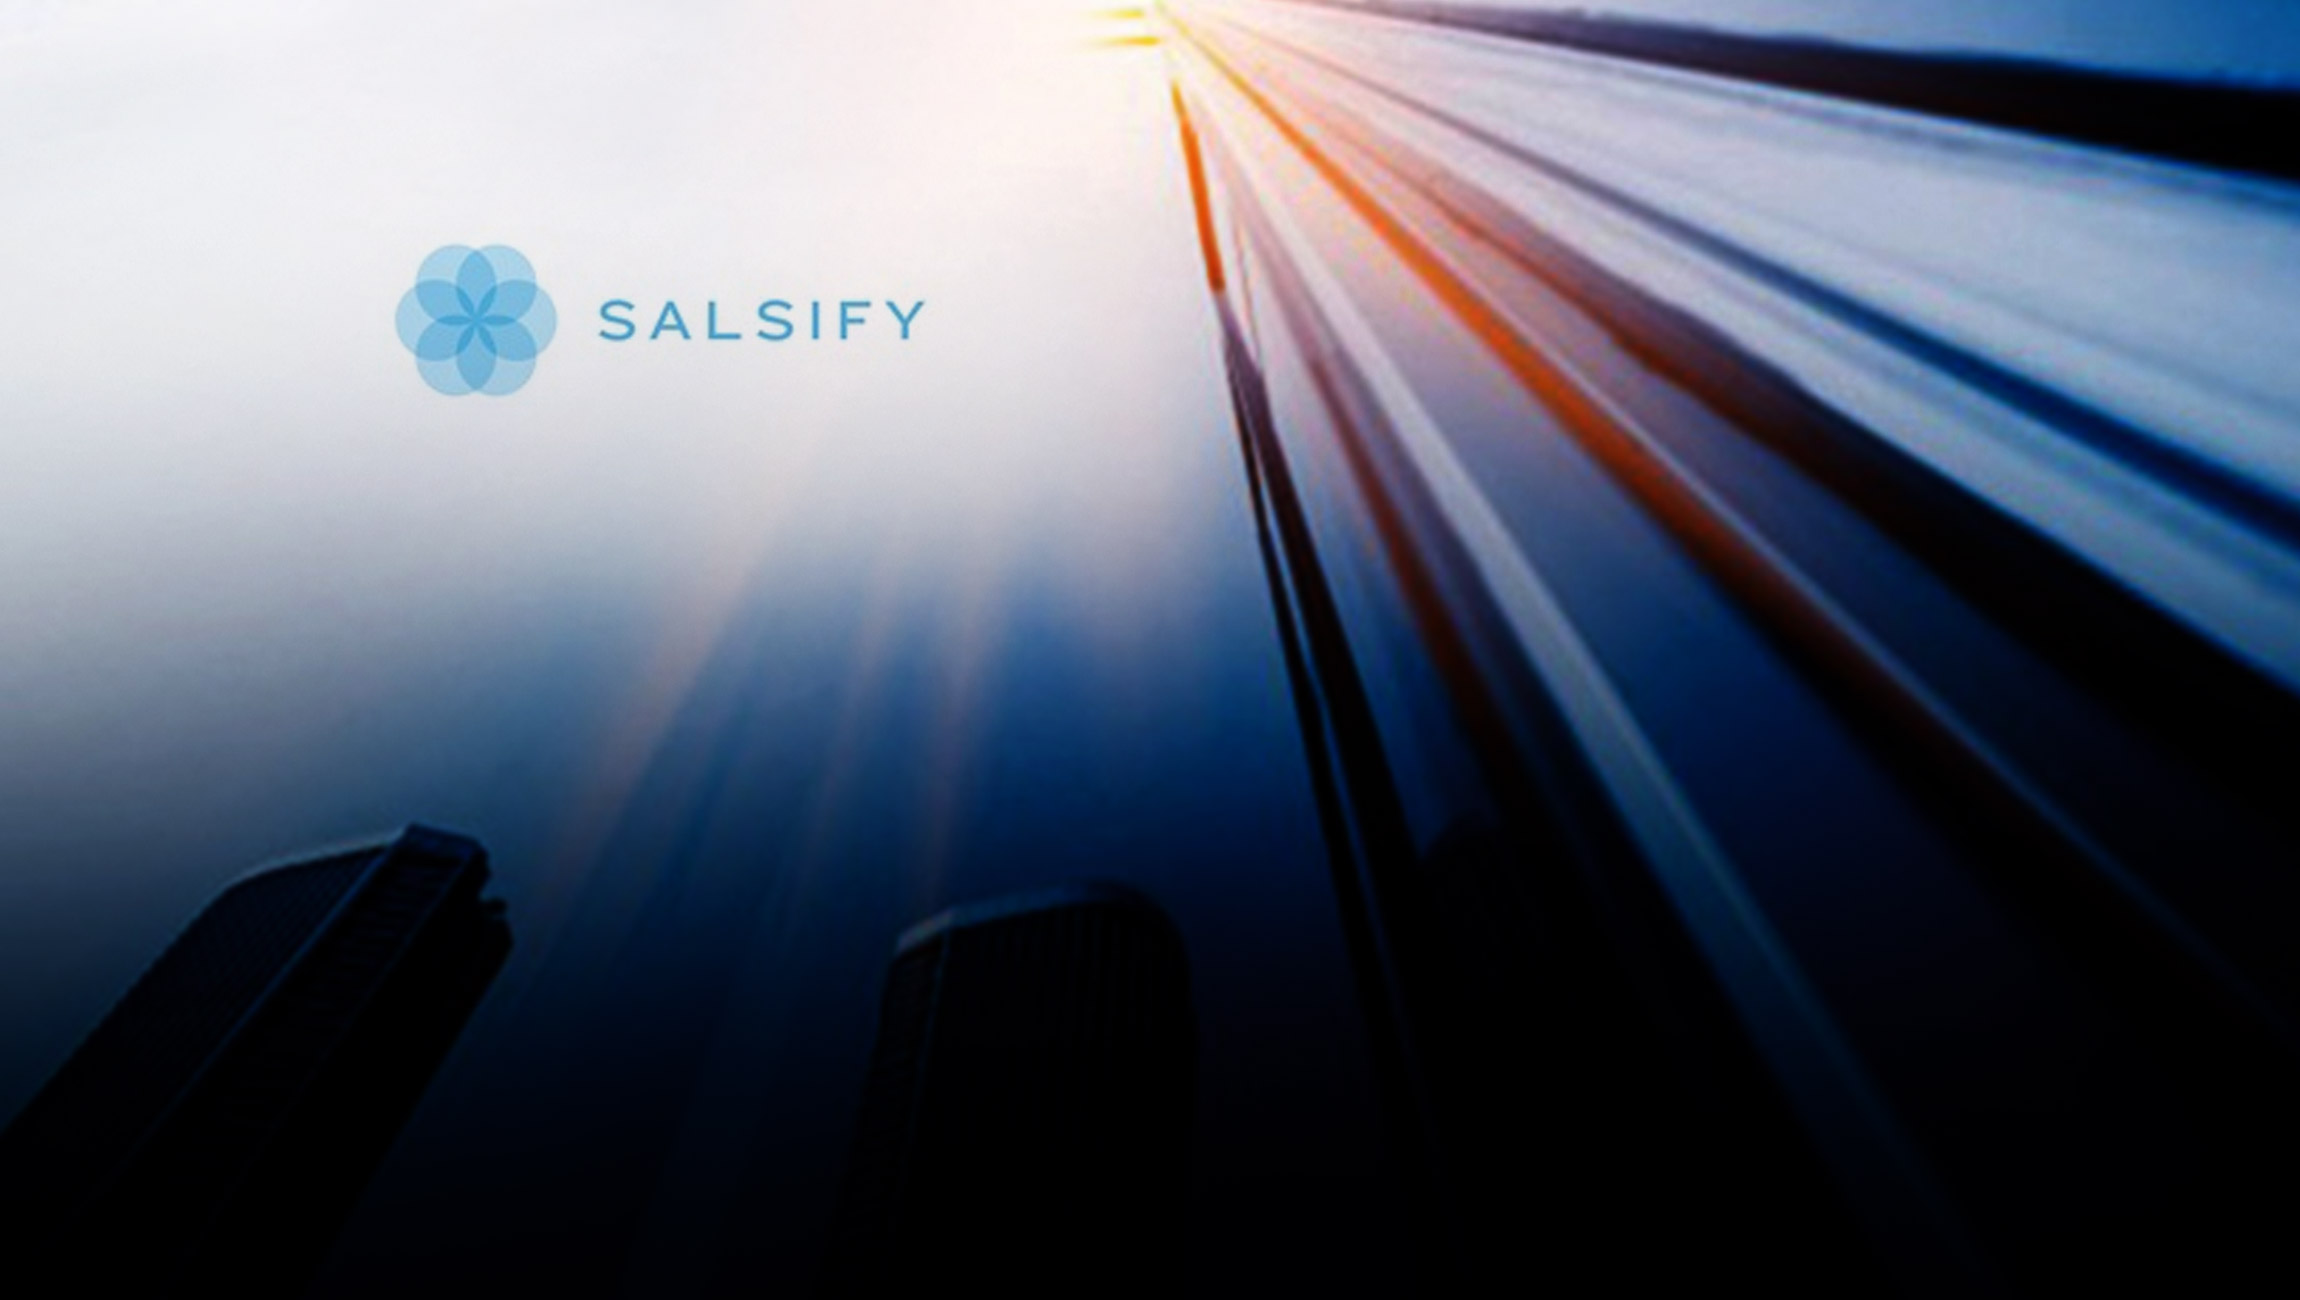 Salsify acquires Alkemics to expand its Commerce Experience Management platform for the Digital Shelf